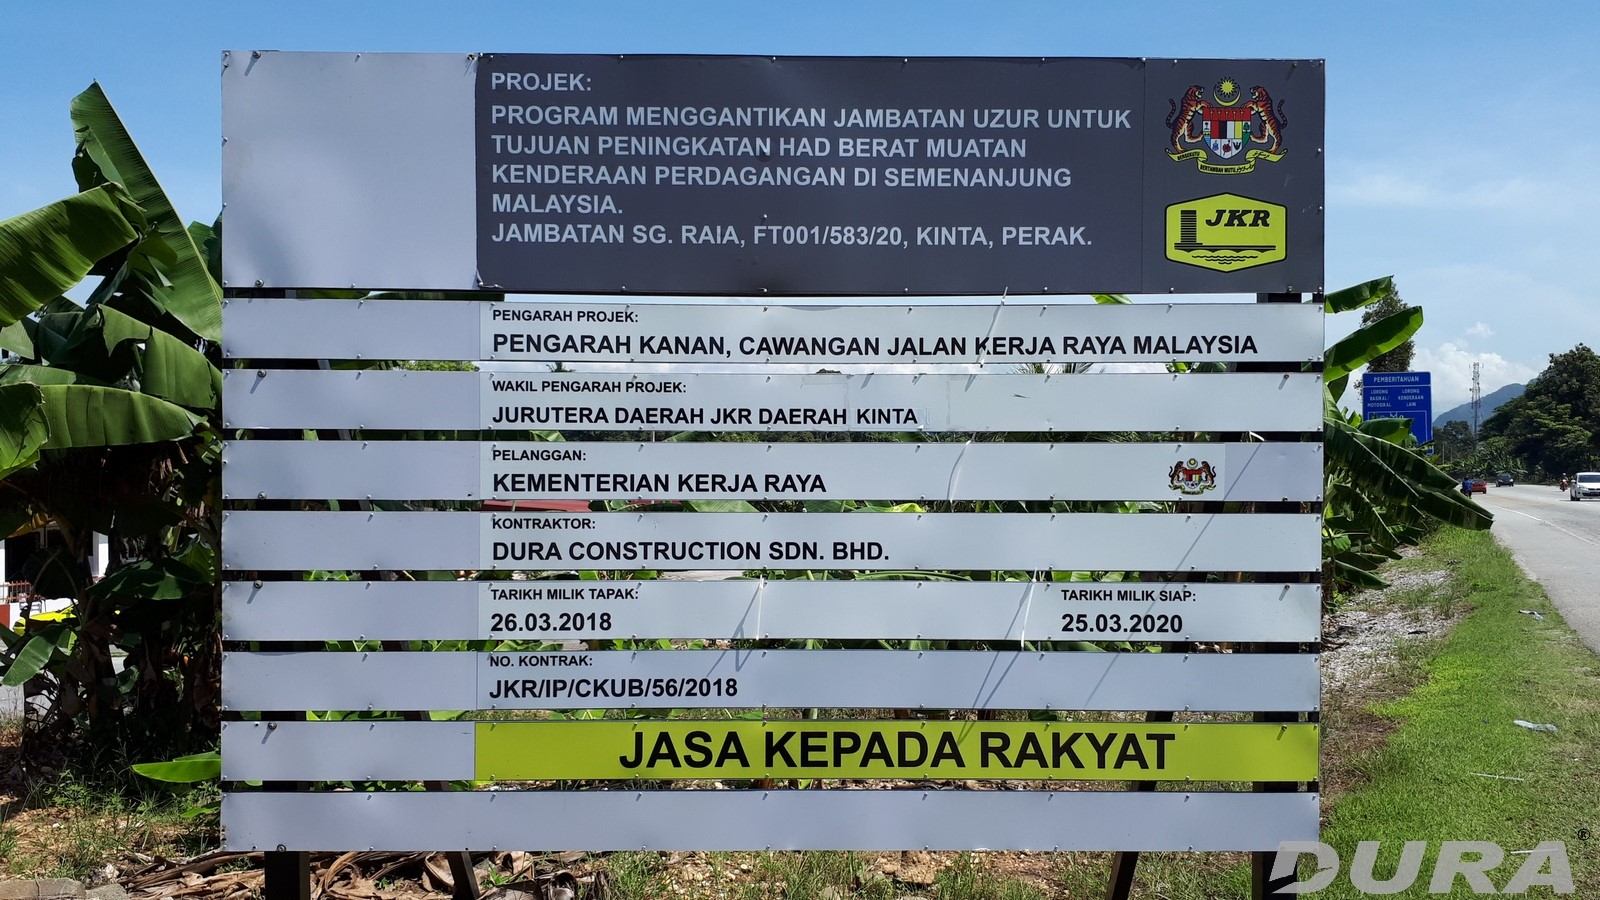 Project signboard for Sg. Raia Bridge